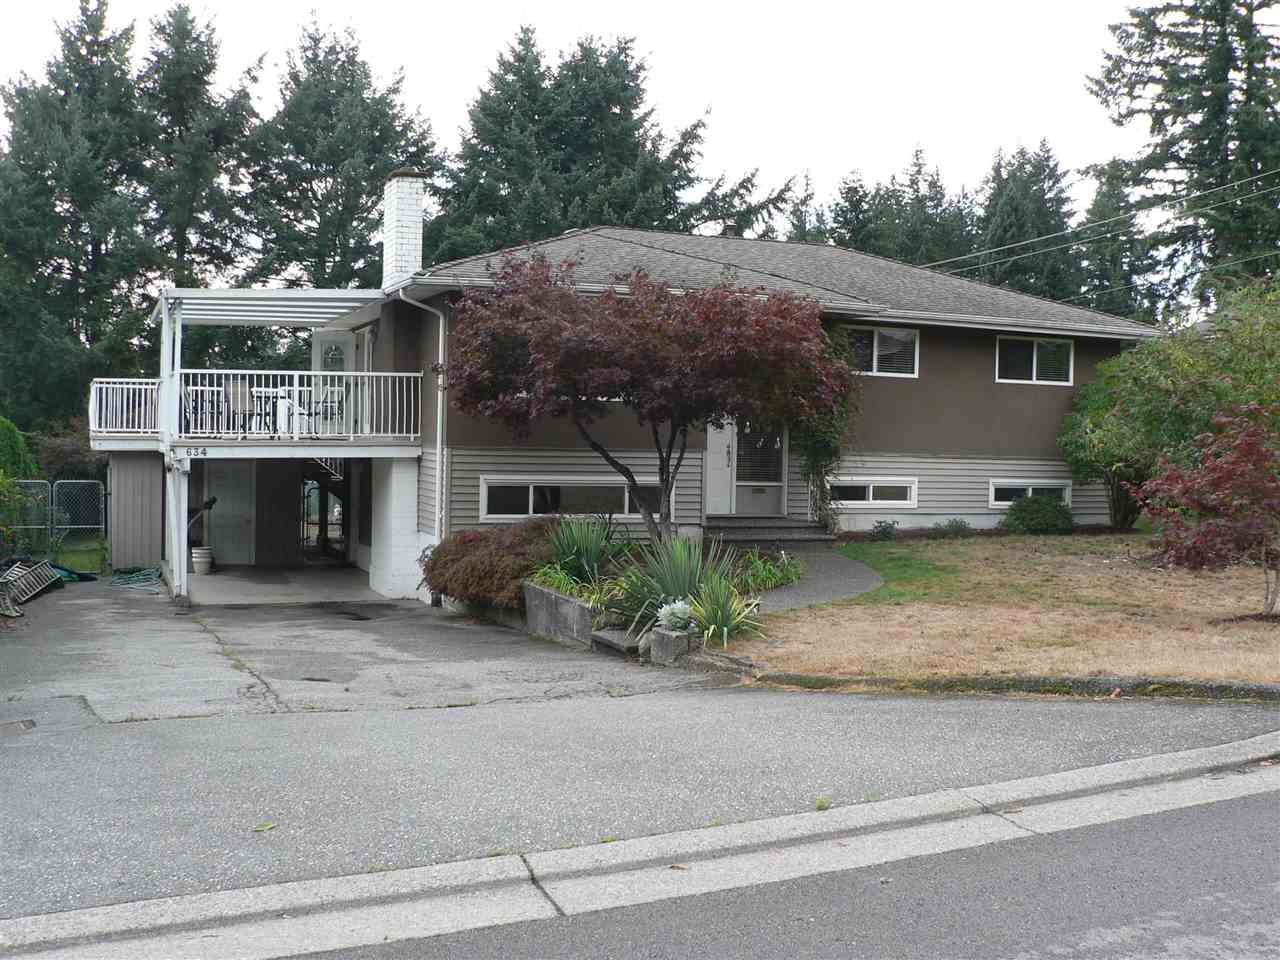 """Main Photo: 634 BERRY Street in Coquitlam: Central Coquitlam House for sale in """"CENTRAL COQUITLAM"""" : MLS®# R2578213"""